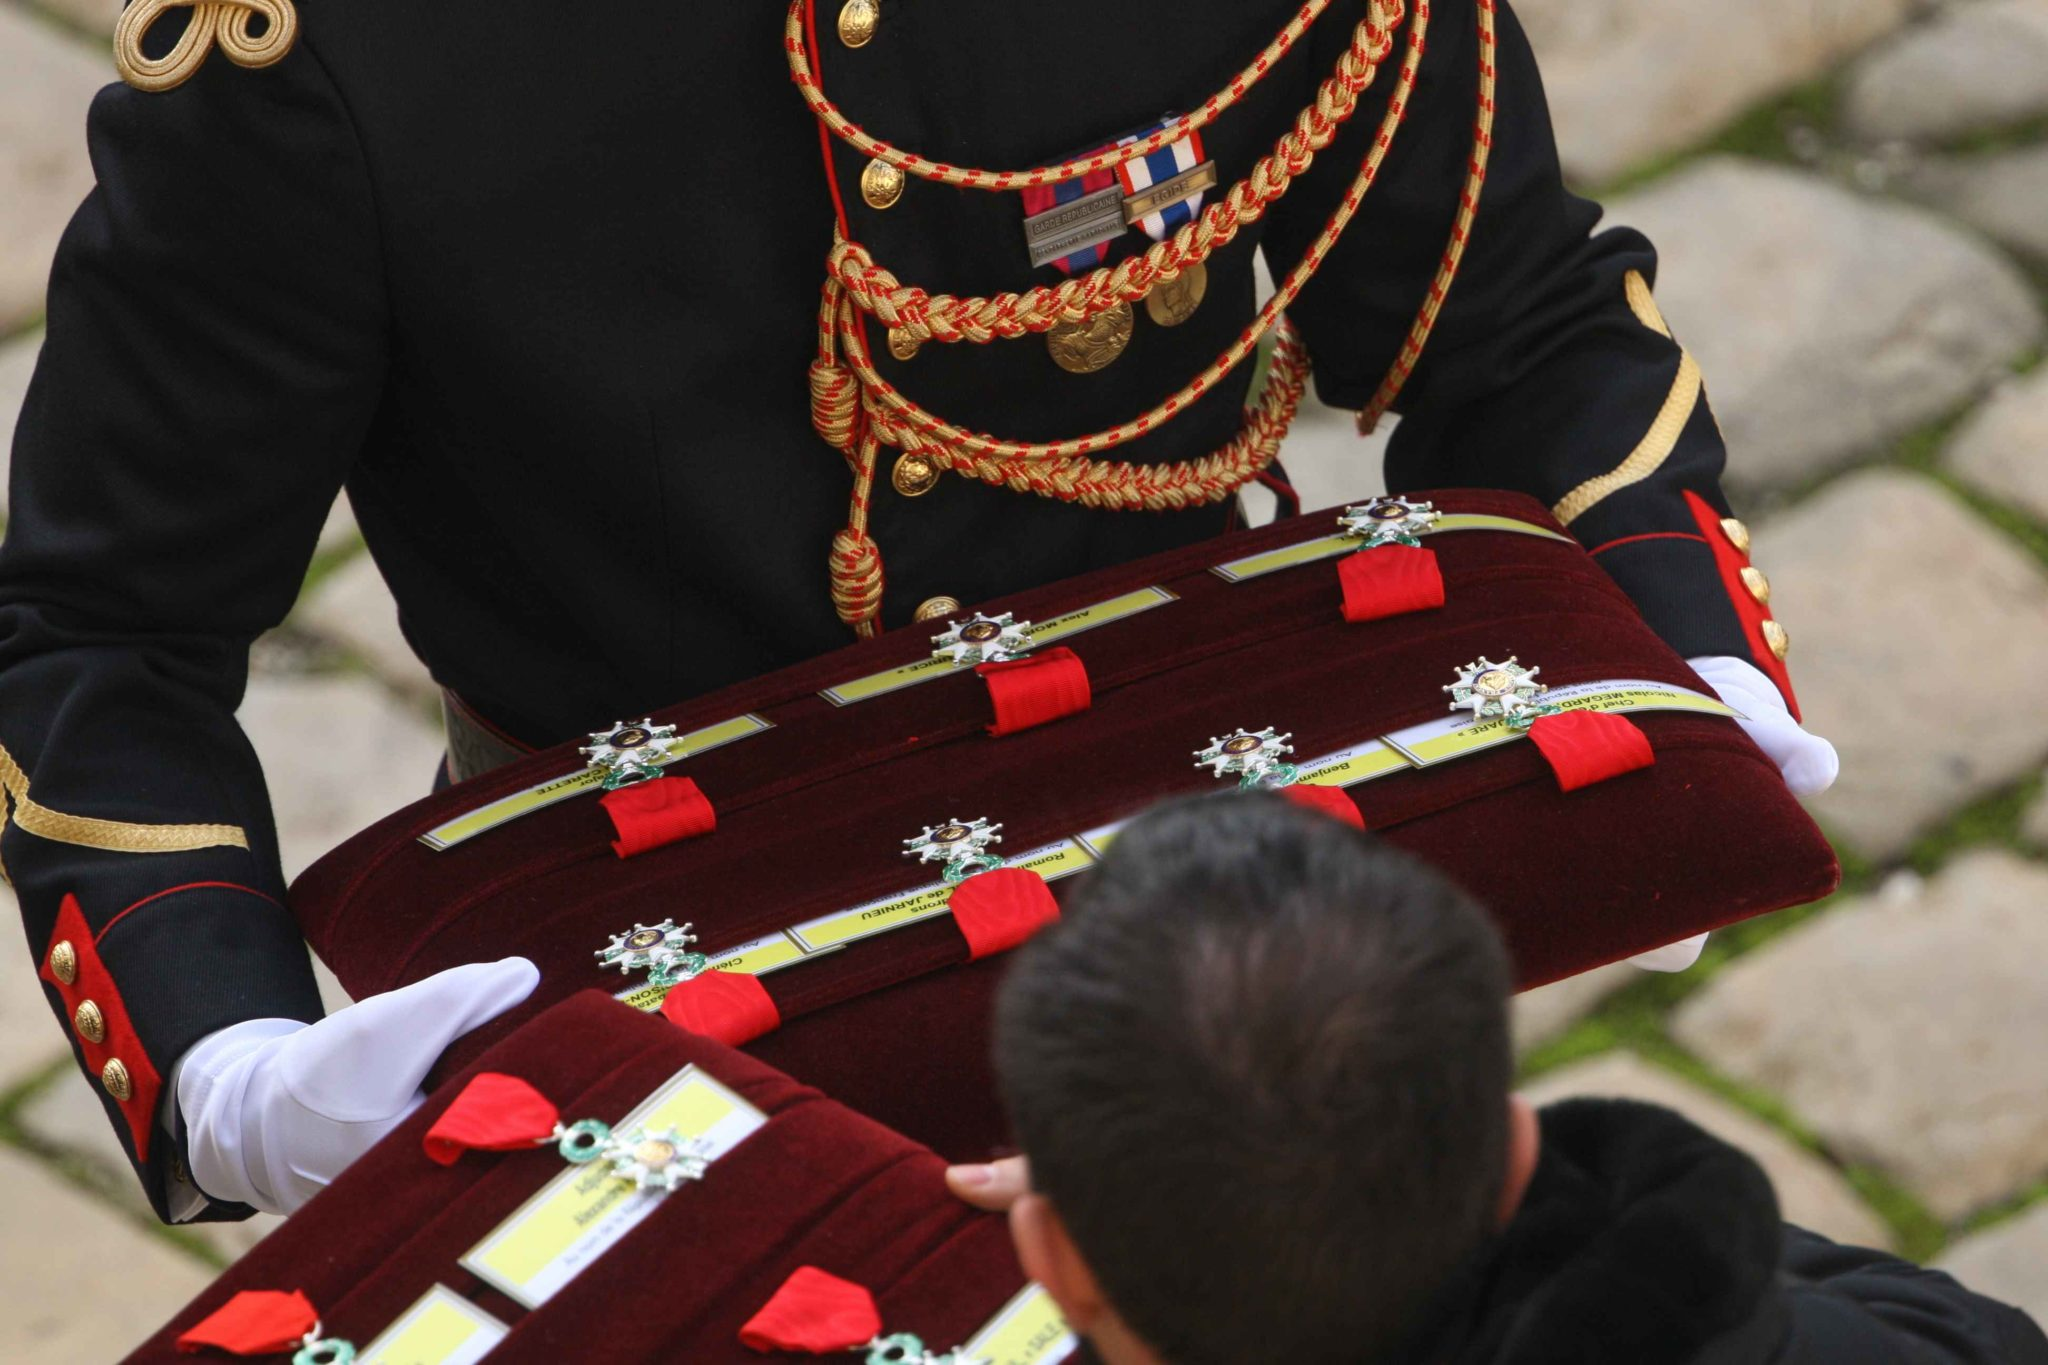 Soldier holds a cushion with Legion of Honor medals to posthumously awards a soldier during a tribute ceremony on December 2, 2019 at the Invalides monument, in Paris, for the 13 French soldiers killed in Mali. In its biggest military funeral in decades, F